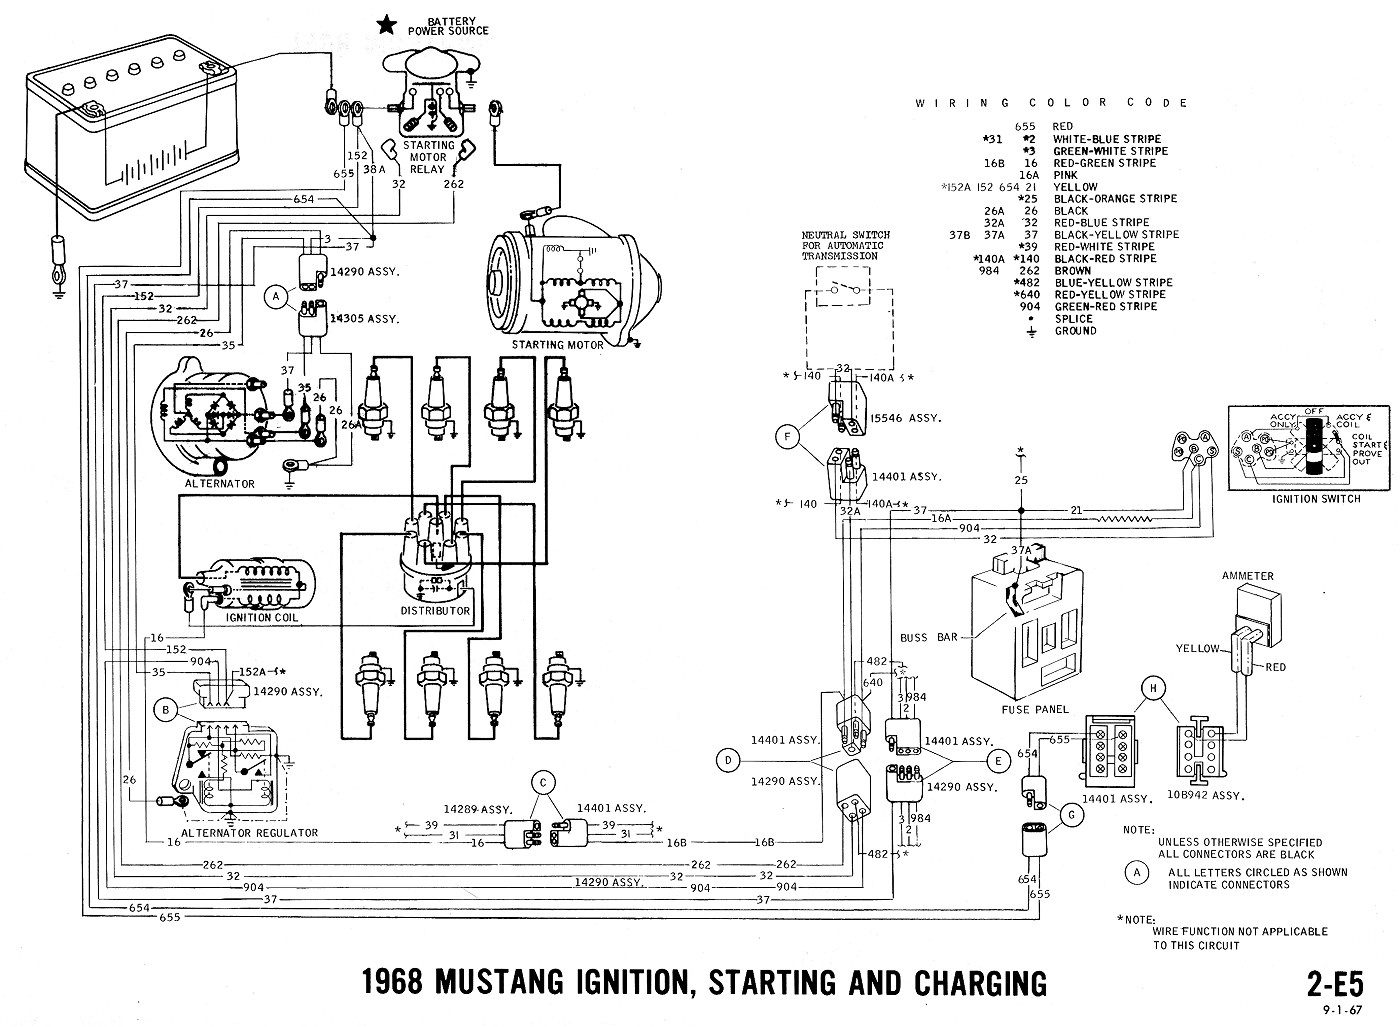 Mustang Wiring Harness Diagram 1980 Firebird Wiring Diagram Diagram on ford 1-wire alternator conversion, ford 6g alternator wiring, ford alternator identification, ford alternator wiring harness, ford 3 wire alternator diagram, ford truck wiring diagrams, ford alternator regulator diagram, ford 3g alternator wiring, ford starter relay, ford 1 wire alternator wiring, ford alternator system, ford 6.0 alternator, ford alternator wiring hook up, ford g3 alternator, ford voltage regulator, ford charging system diagrams, ford truck alternator diagram, ford alternator pinout, alternator parts diagram, ford alternator connections,